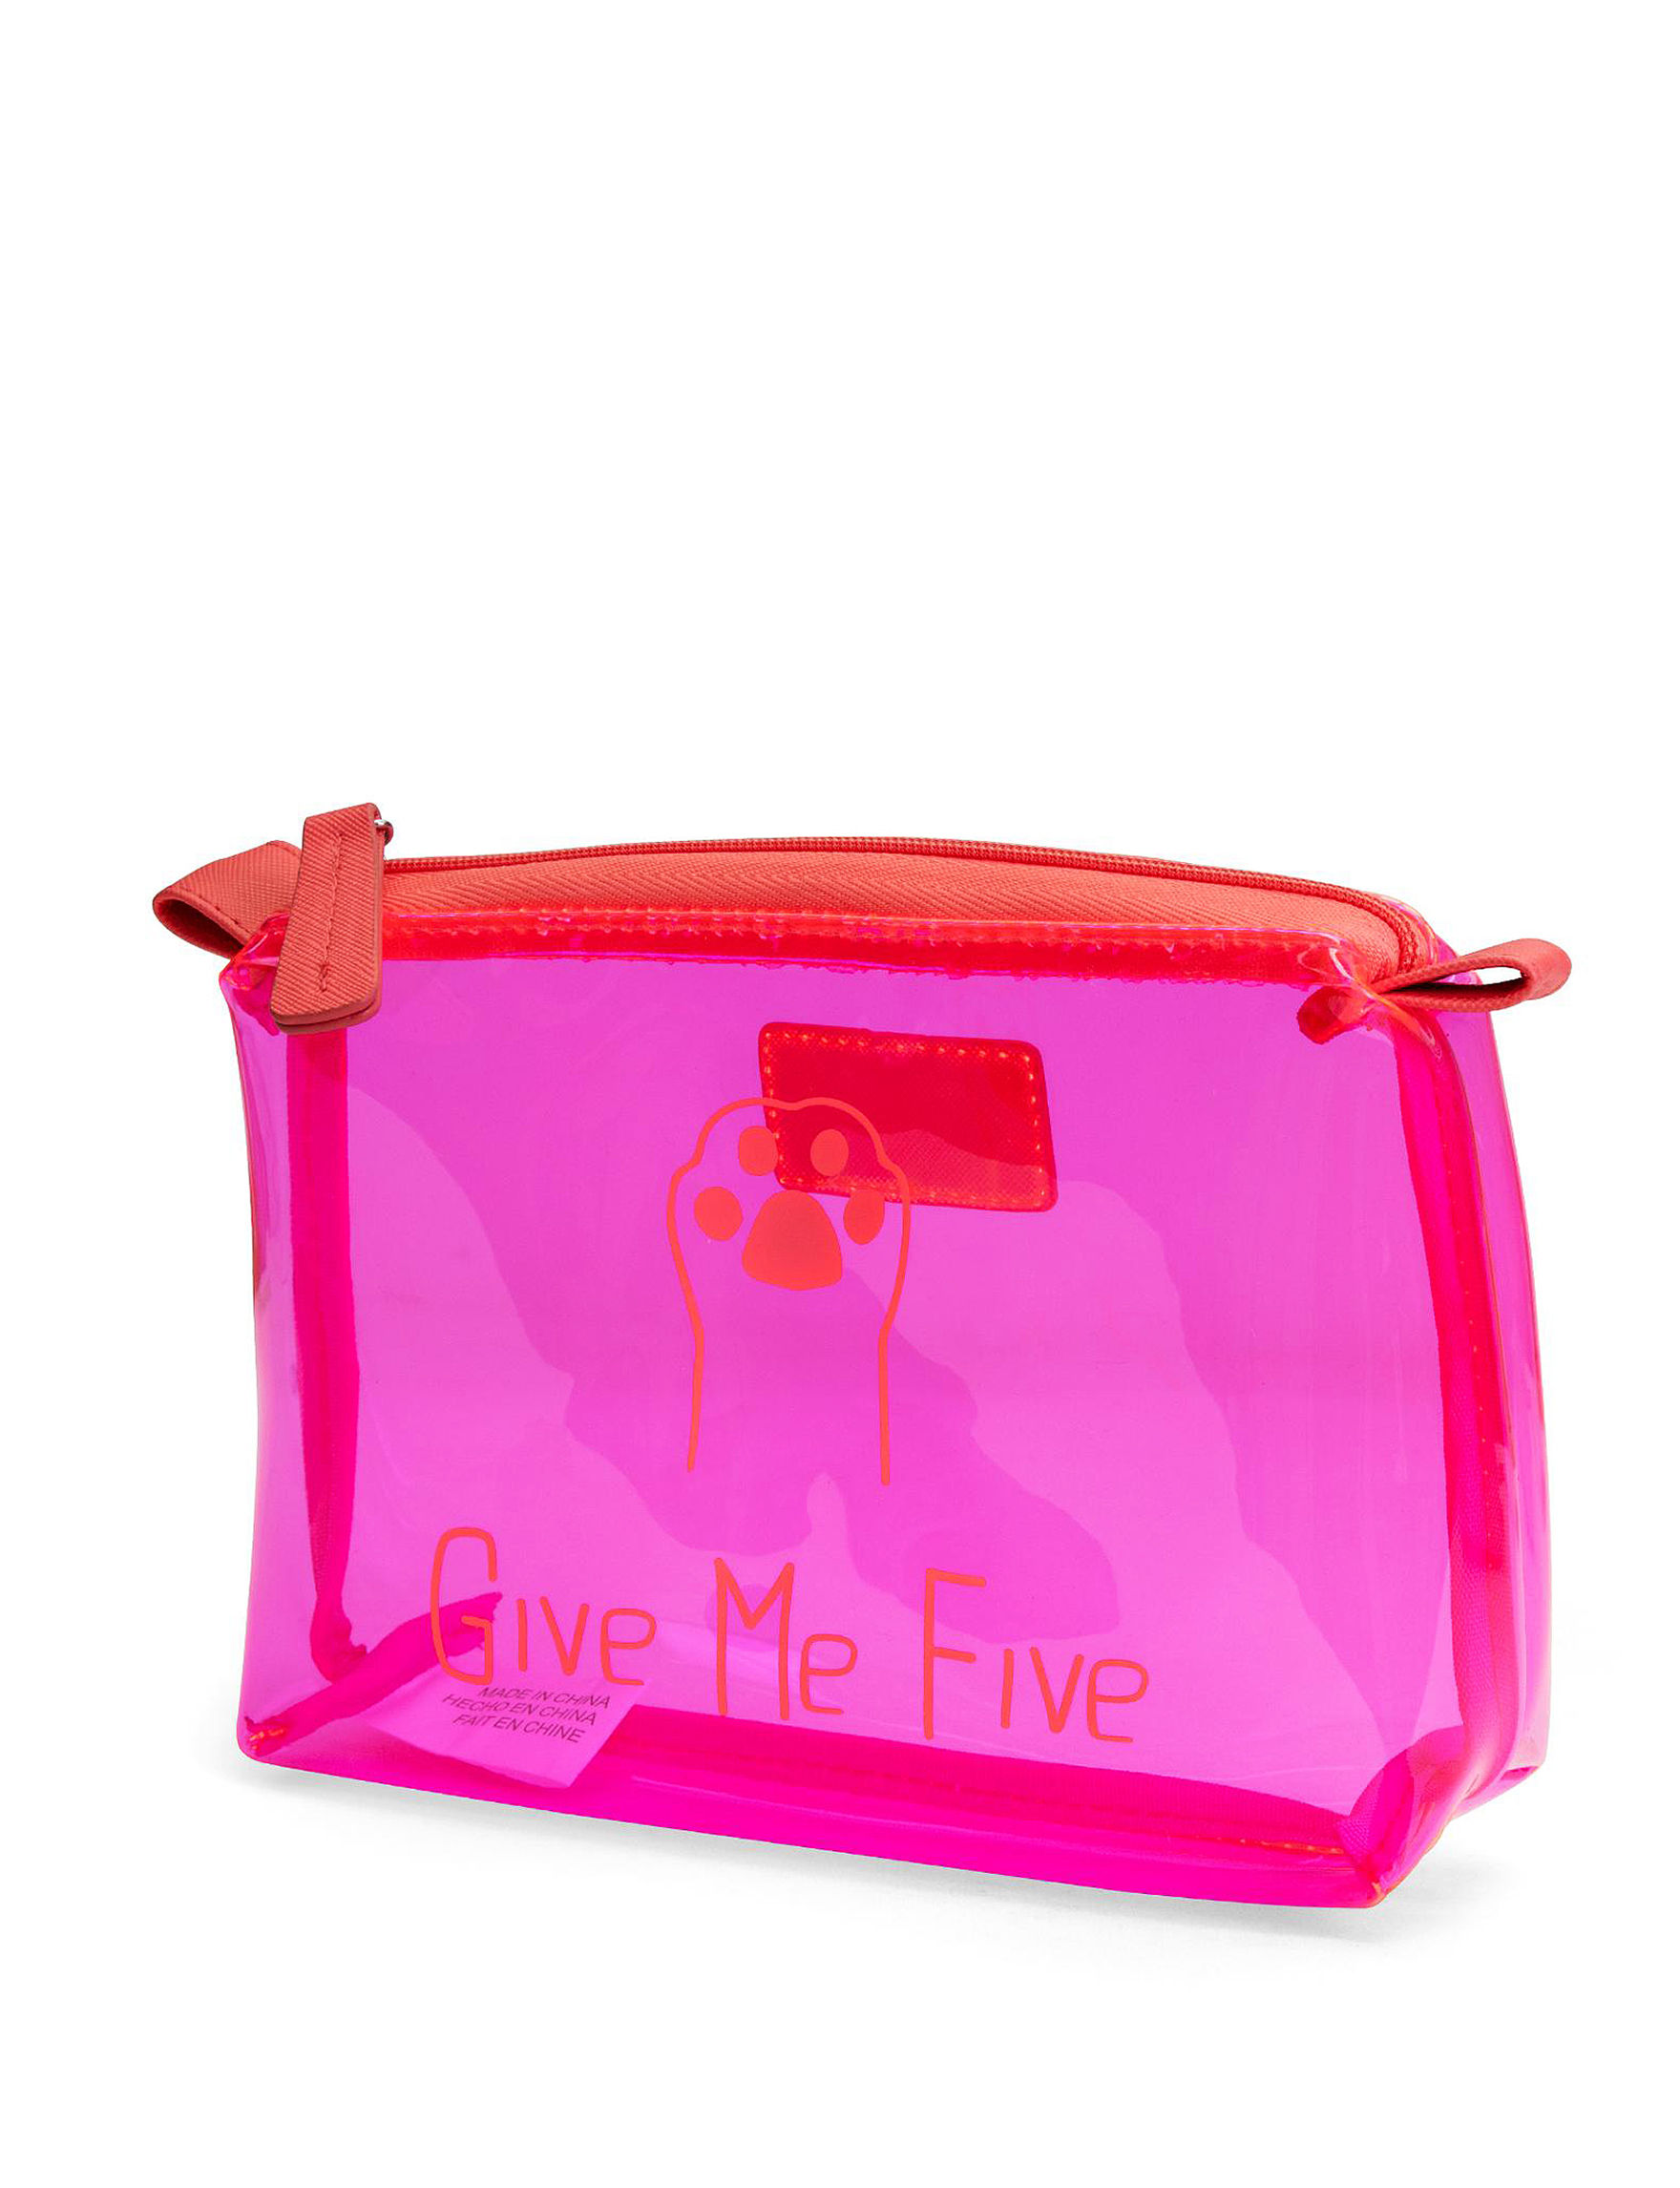 Mundi Bright Red Pouch